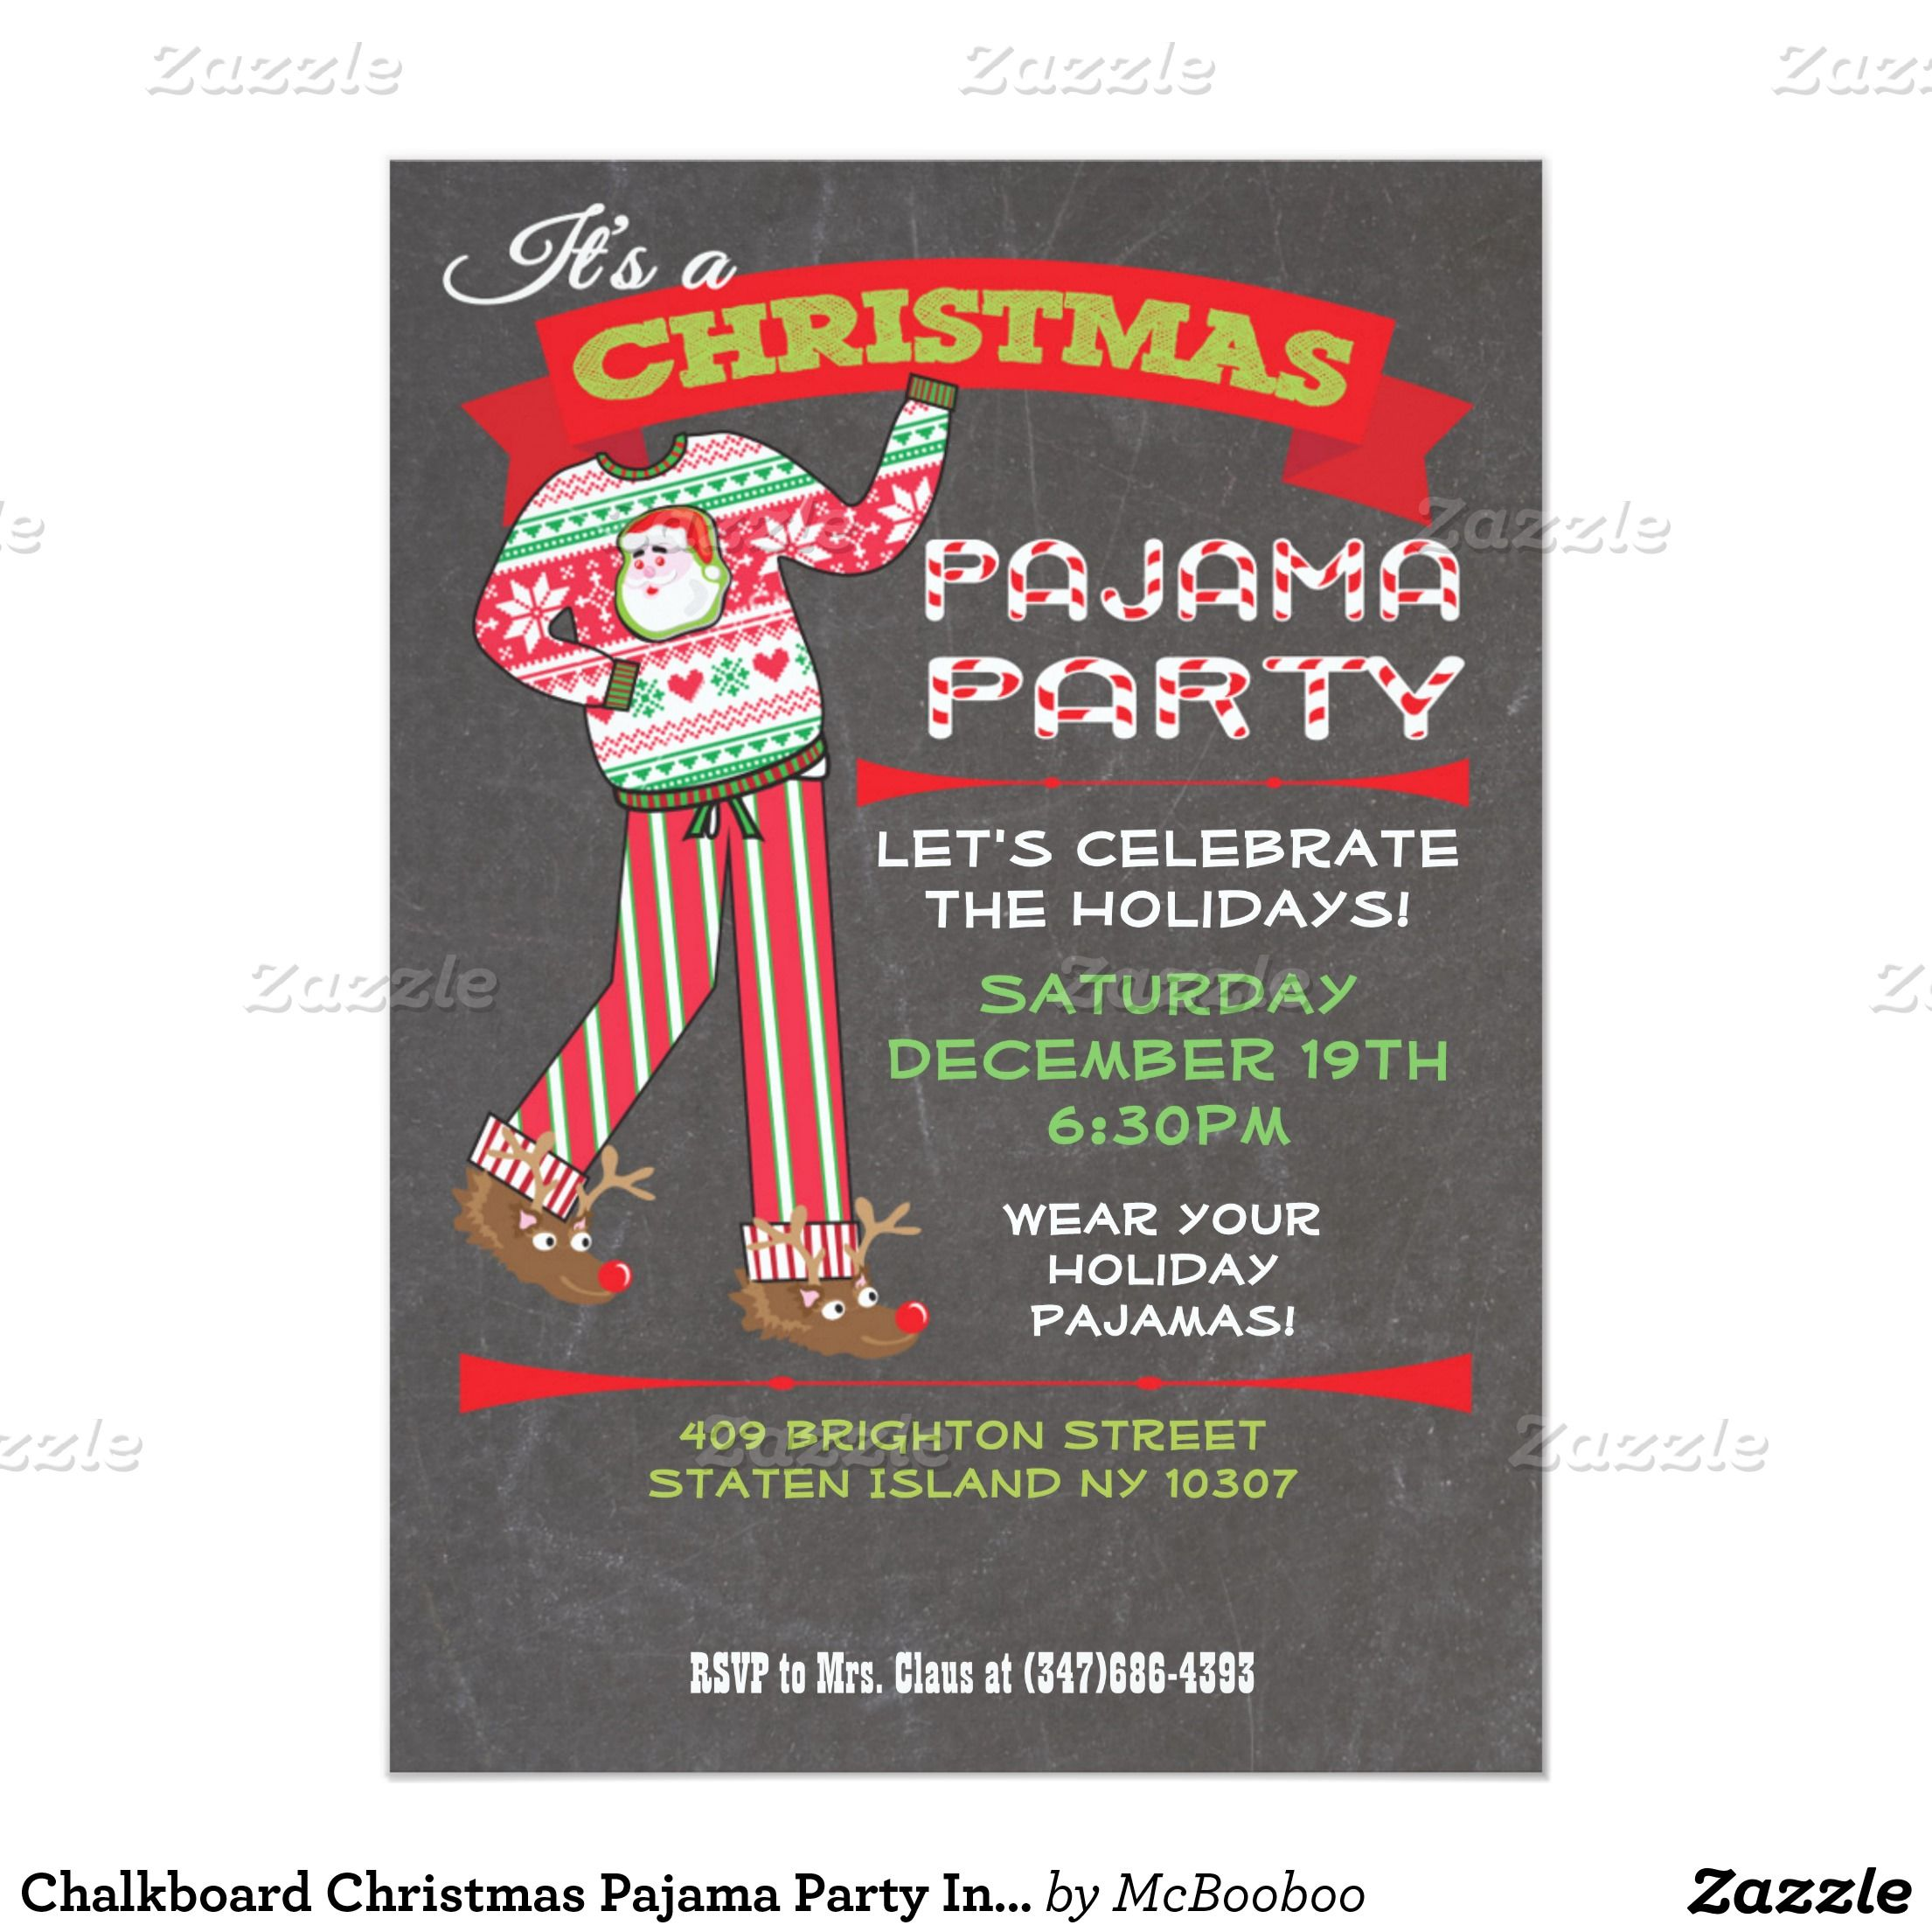 Chalkboard Christmas Pajama Party Invitations | Christmas pajama ...